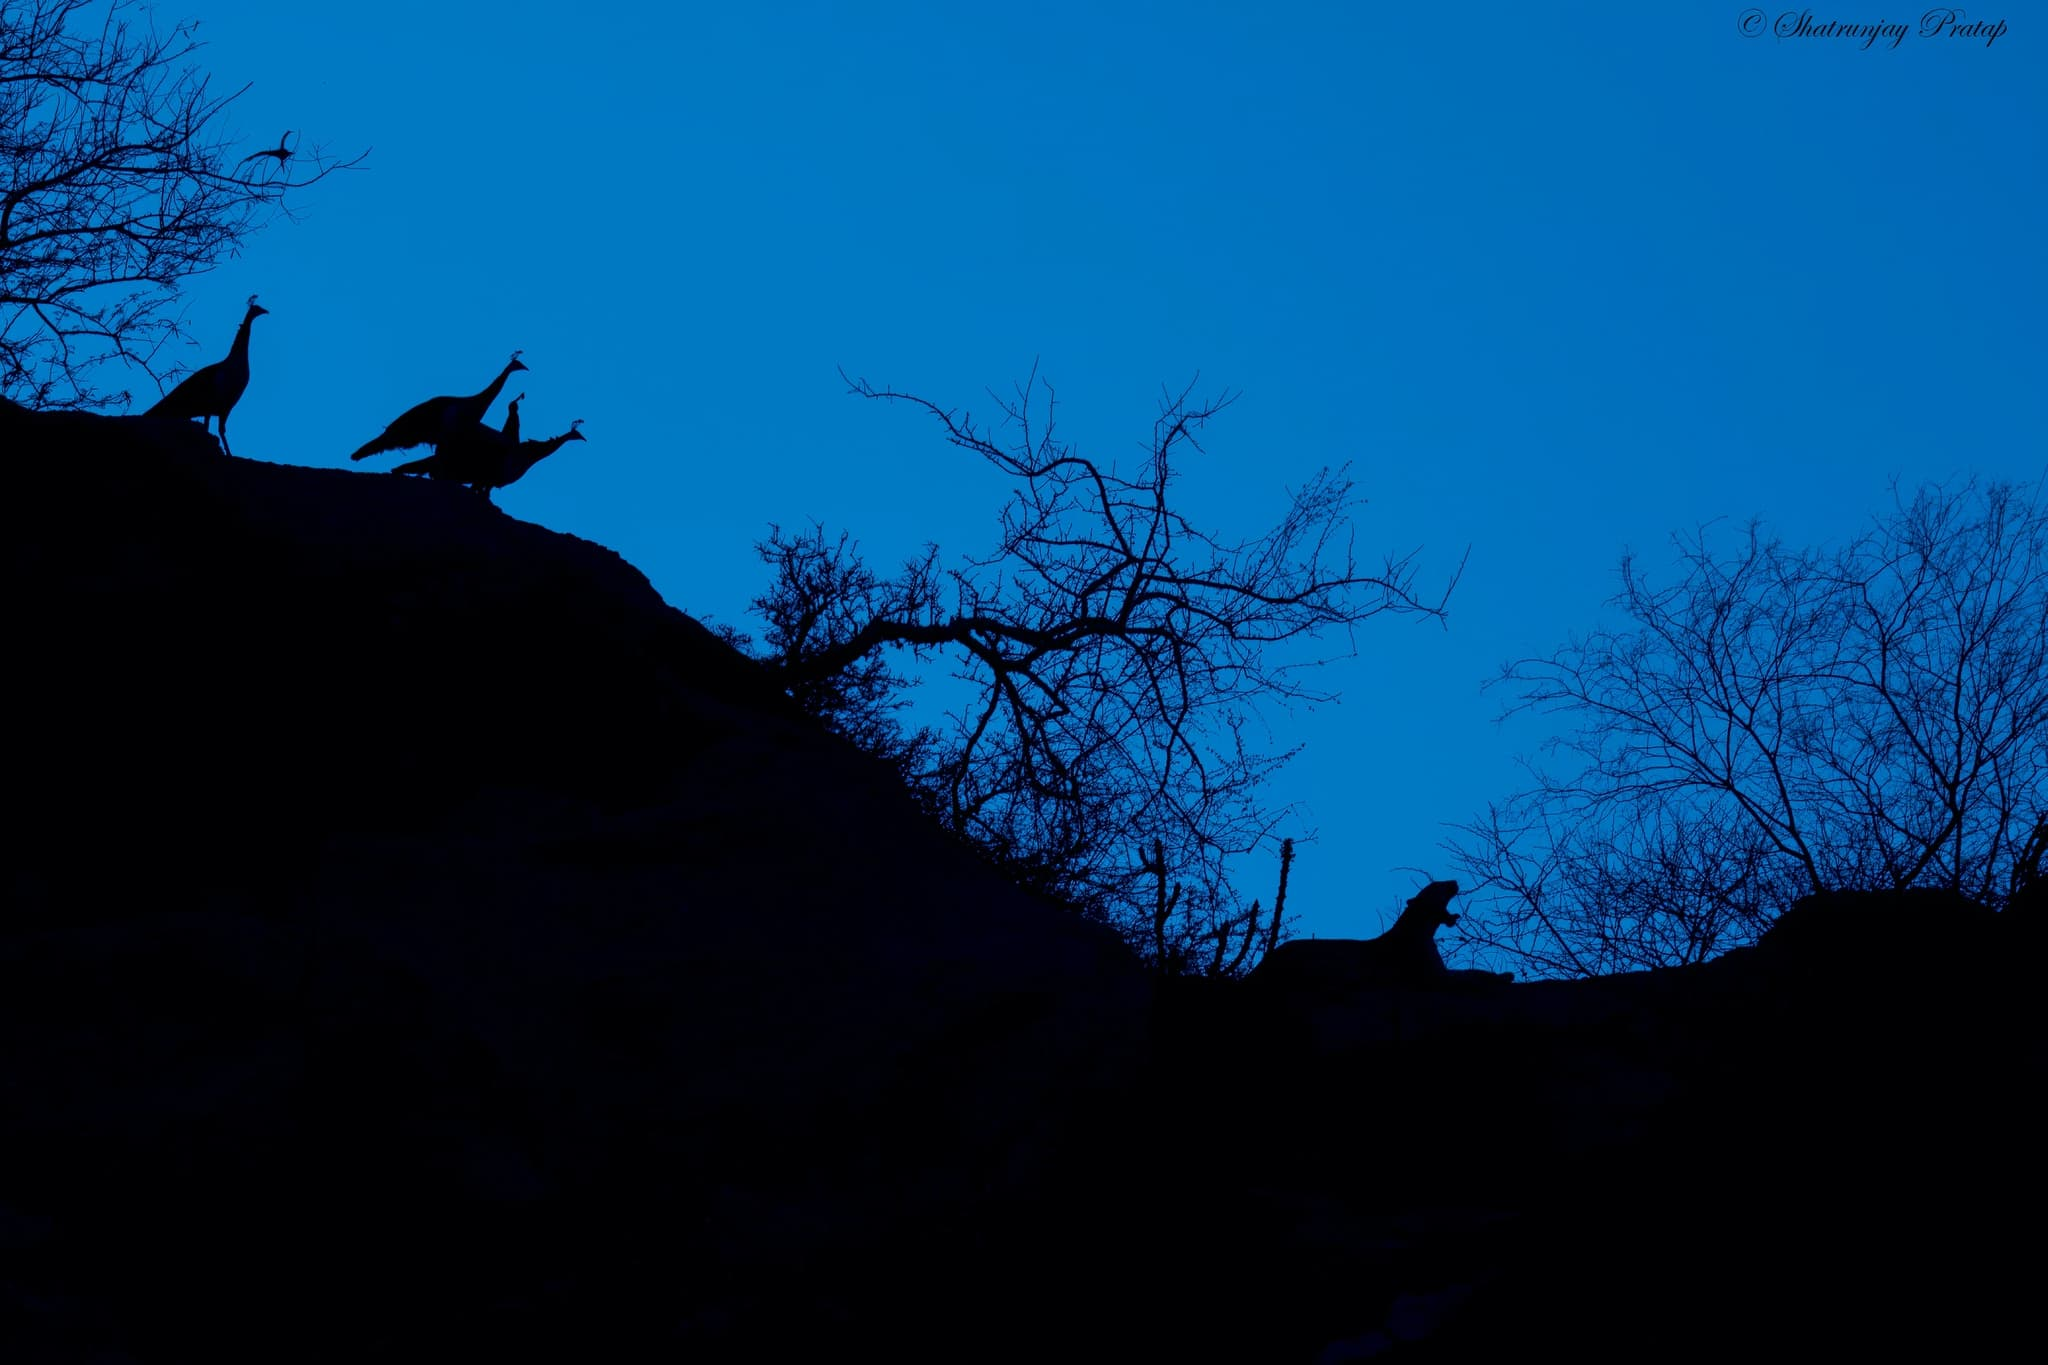 Wildlife silhouetted against the horizon photographed in Bera Jawai the location for the NaturesLens India's Leopards of Bera Photography Holiday